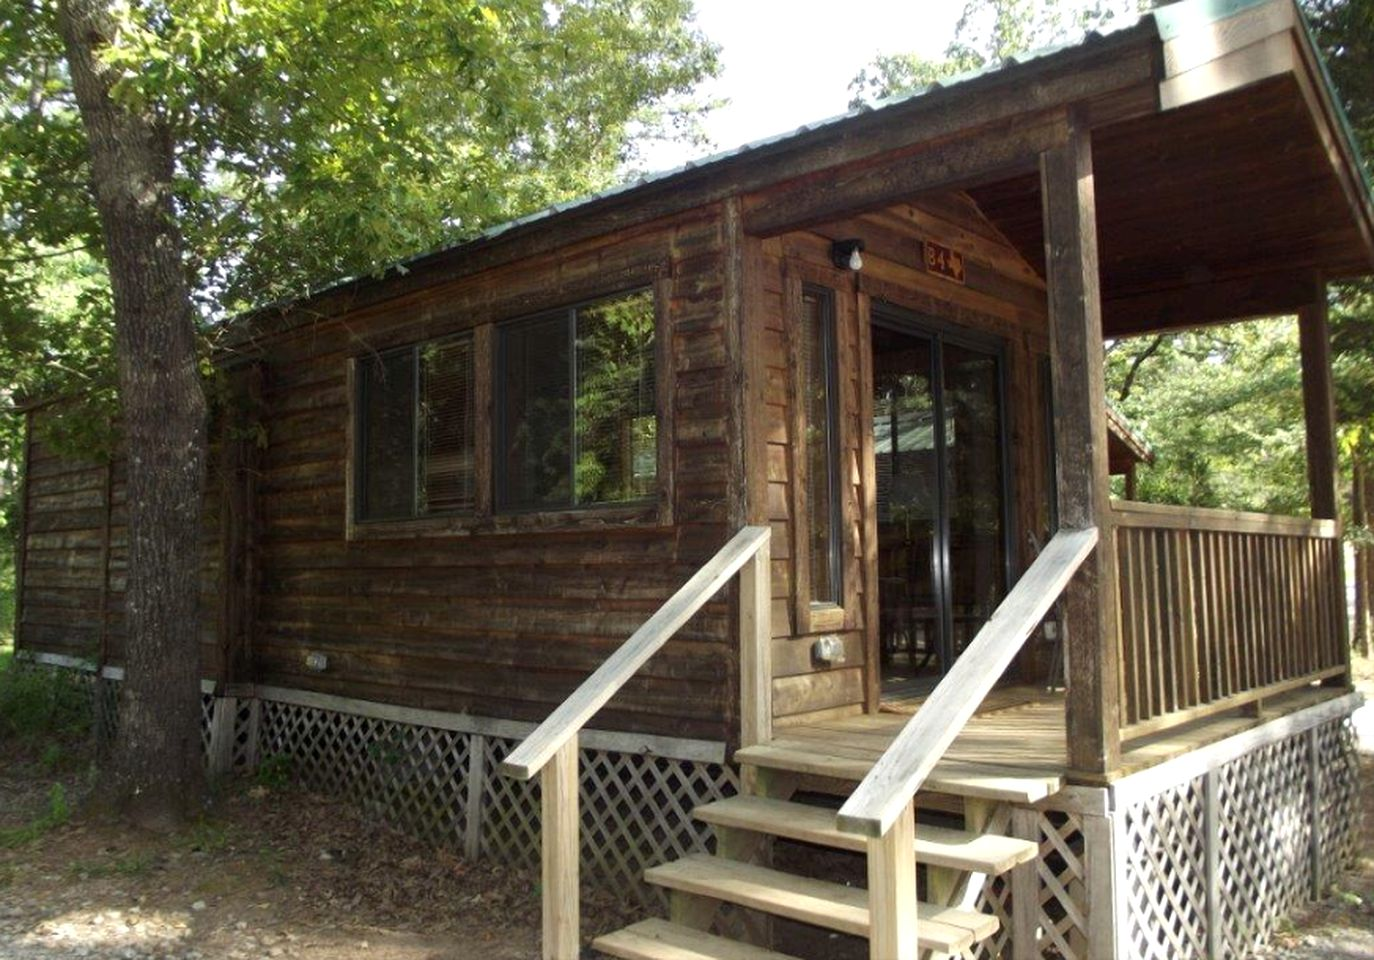 Rustic Cabin Rentals near Dallas, East Texas Piney Woods (Tyler, Texas, United States)